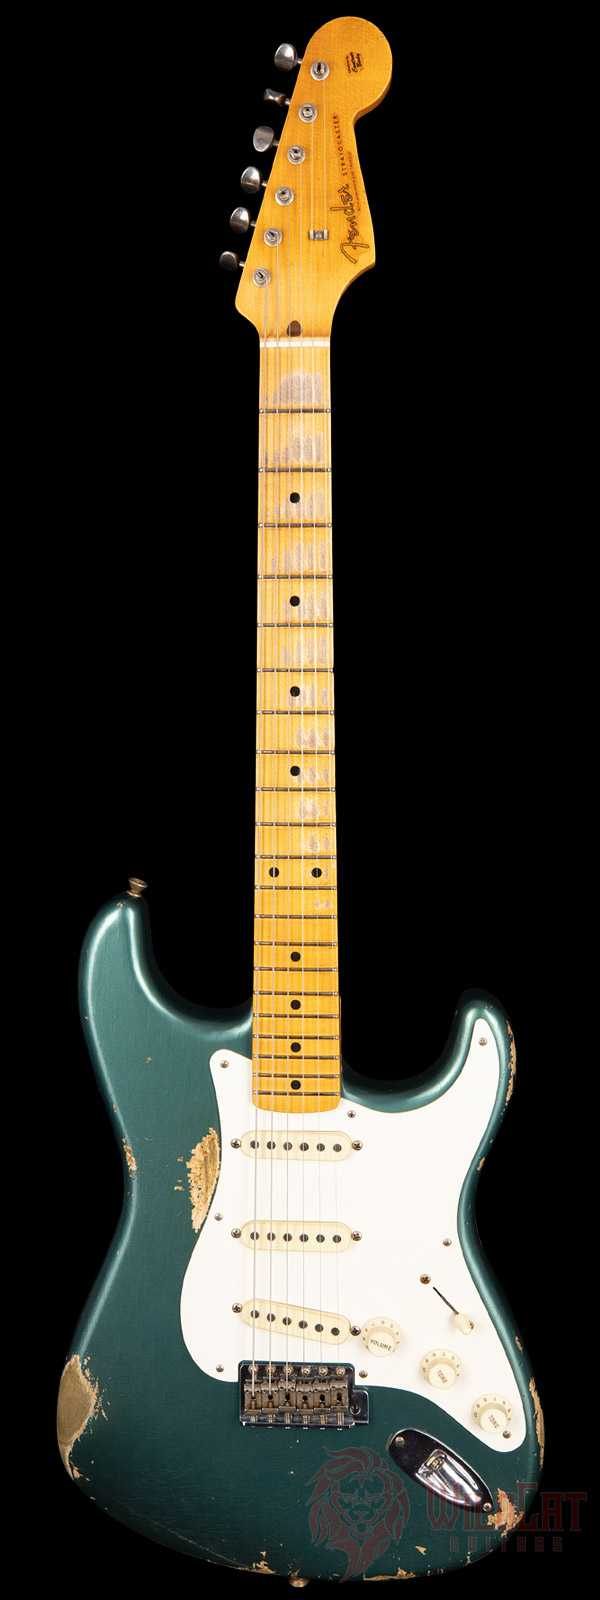 Fender Custom Shop Masterbuilt Greg Fessler 1957 Stratocaster Sherwood Green Metallic Relic